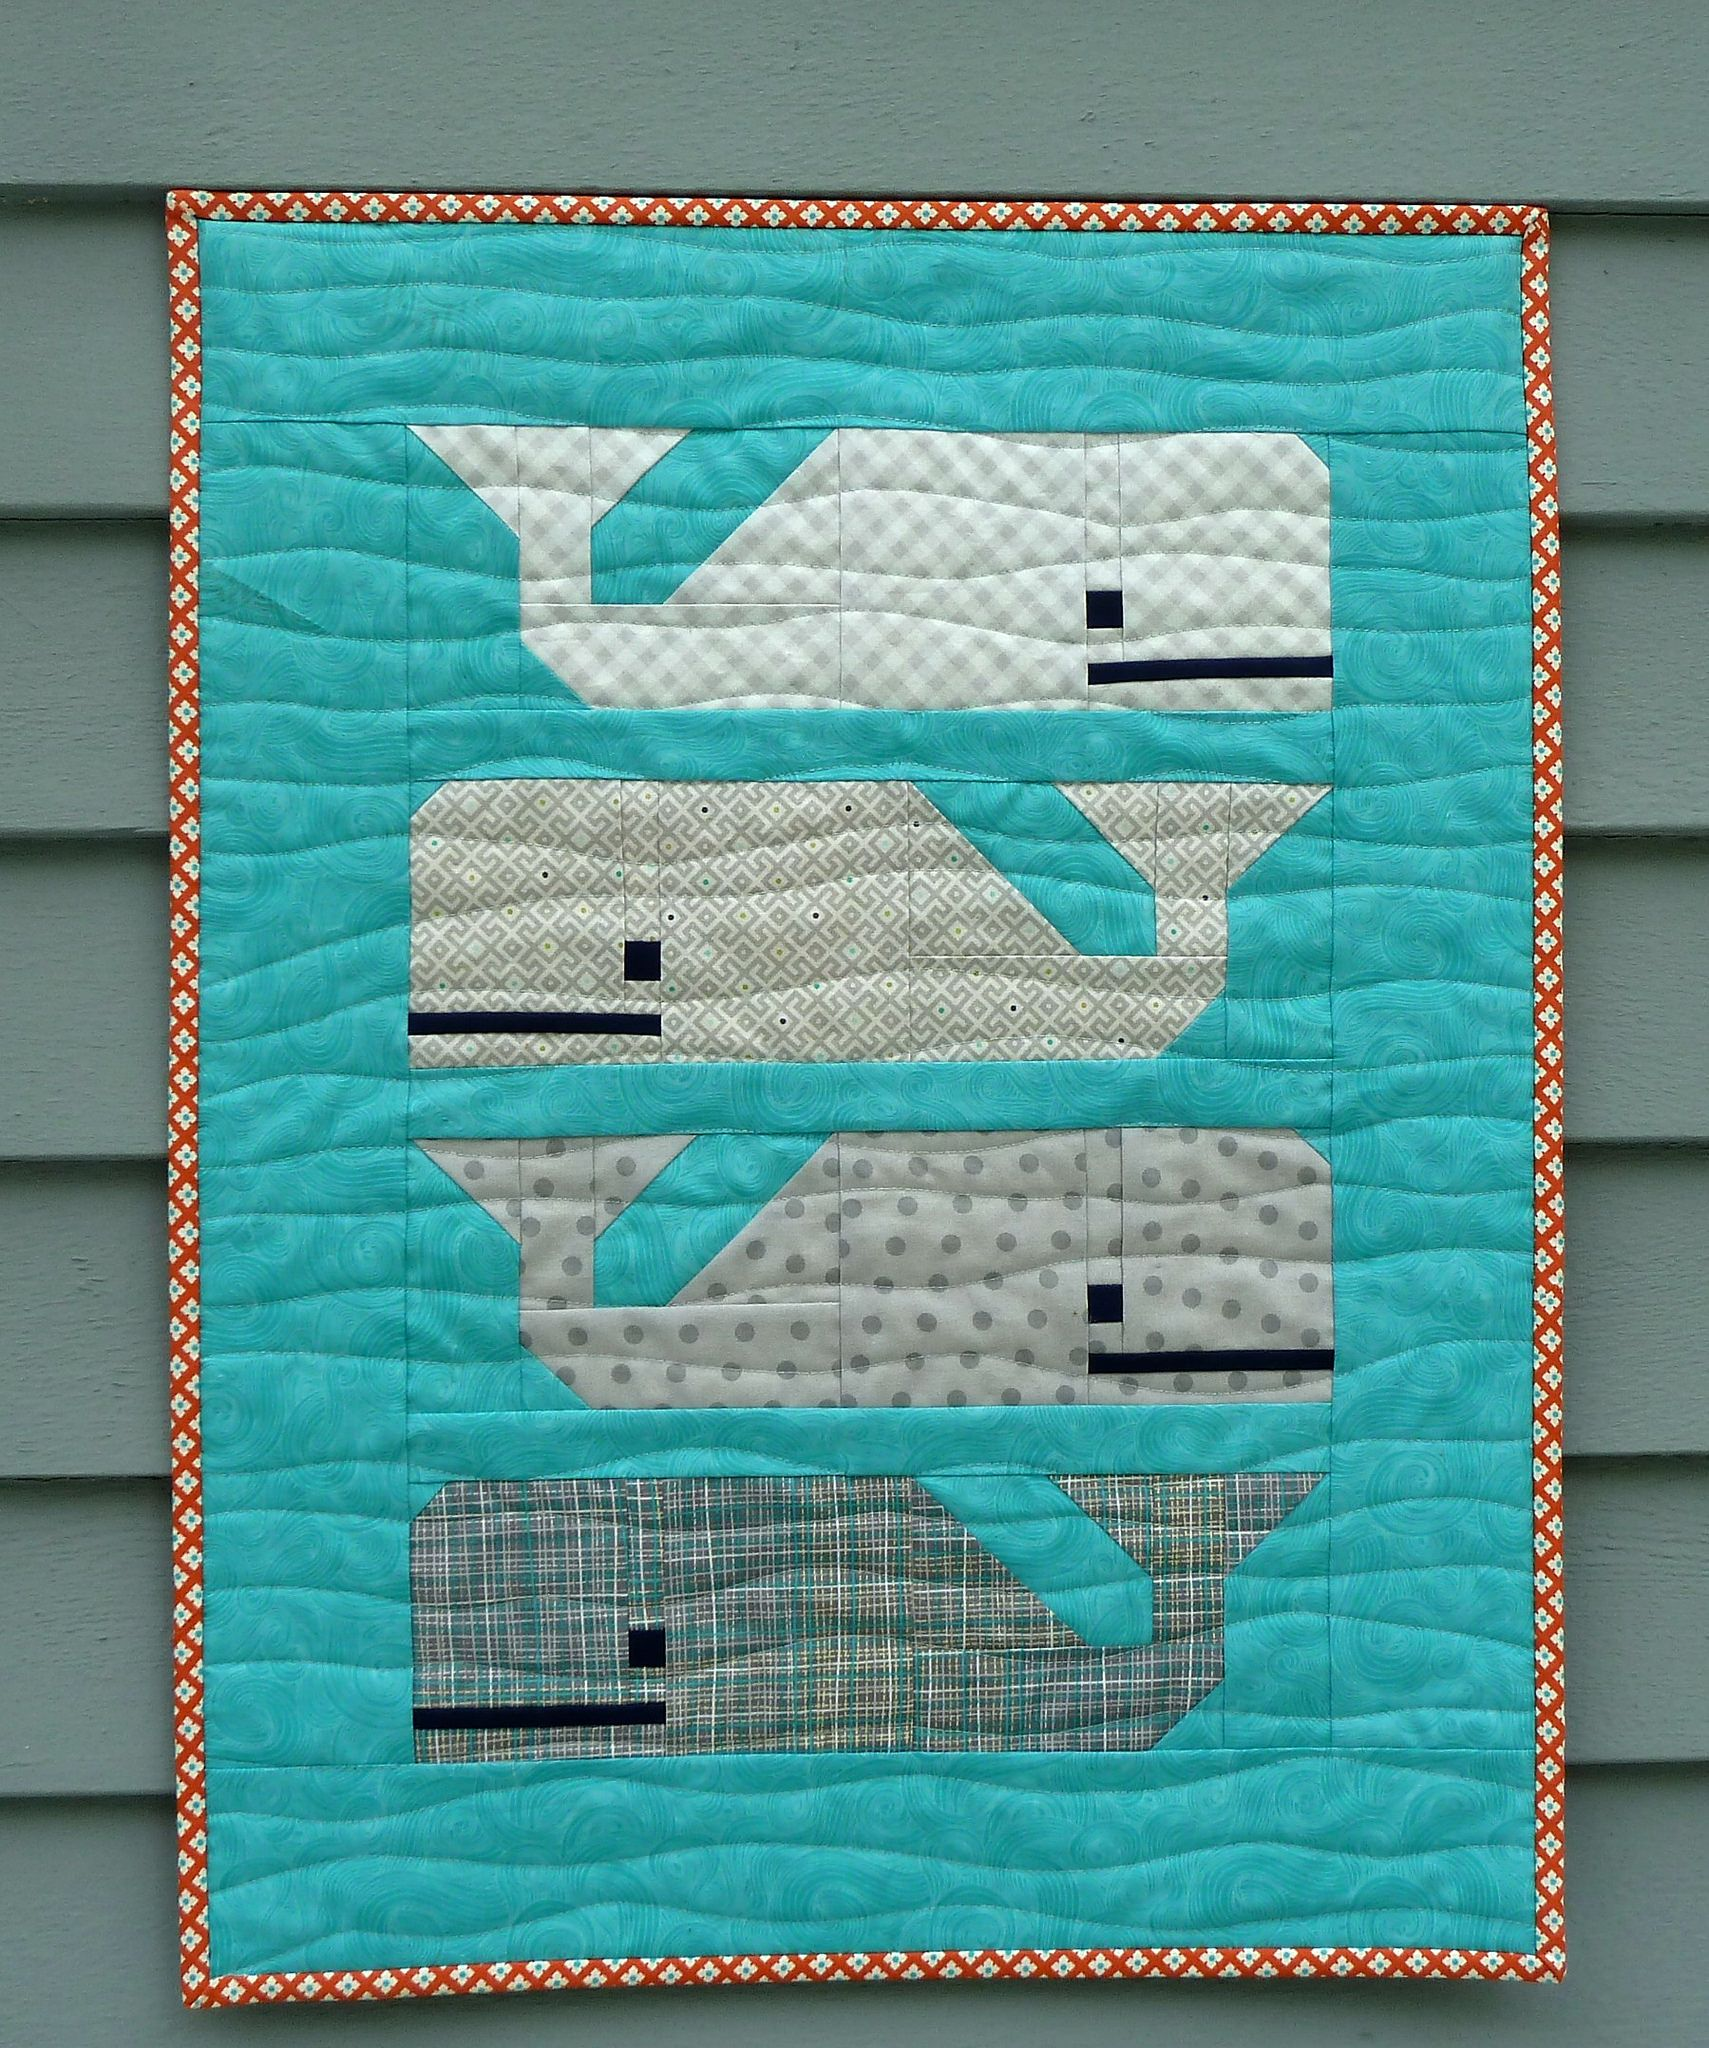 preppy the whale mini quilt joli pinterest couture couture enfant et art textile. Black Bedroom Furniture Sets. Home Design Ideas